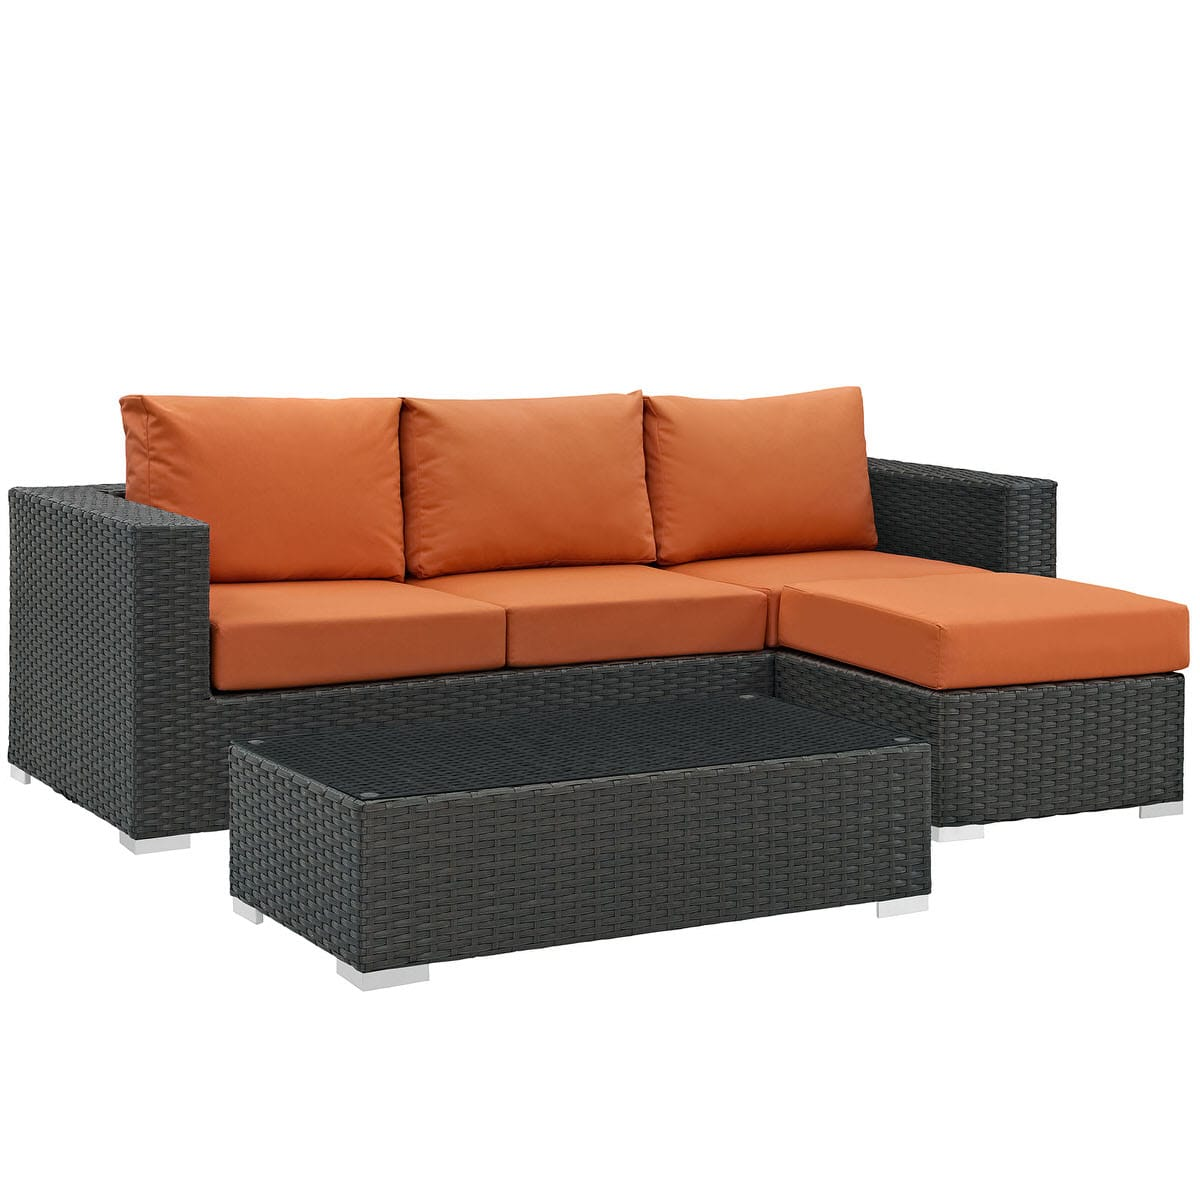 Sojourn 3 Piece Outdoor Patio Sunbrella Sectional Set Canvas Tuscan By  Modway (Modway)